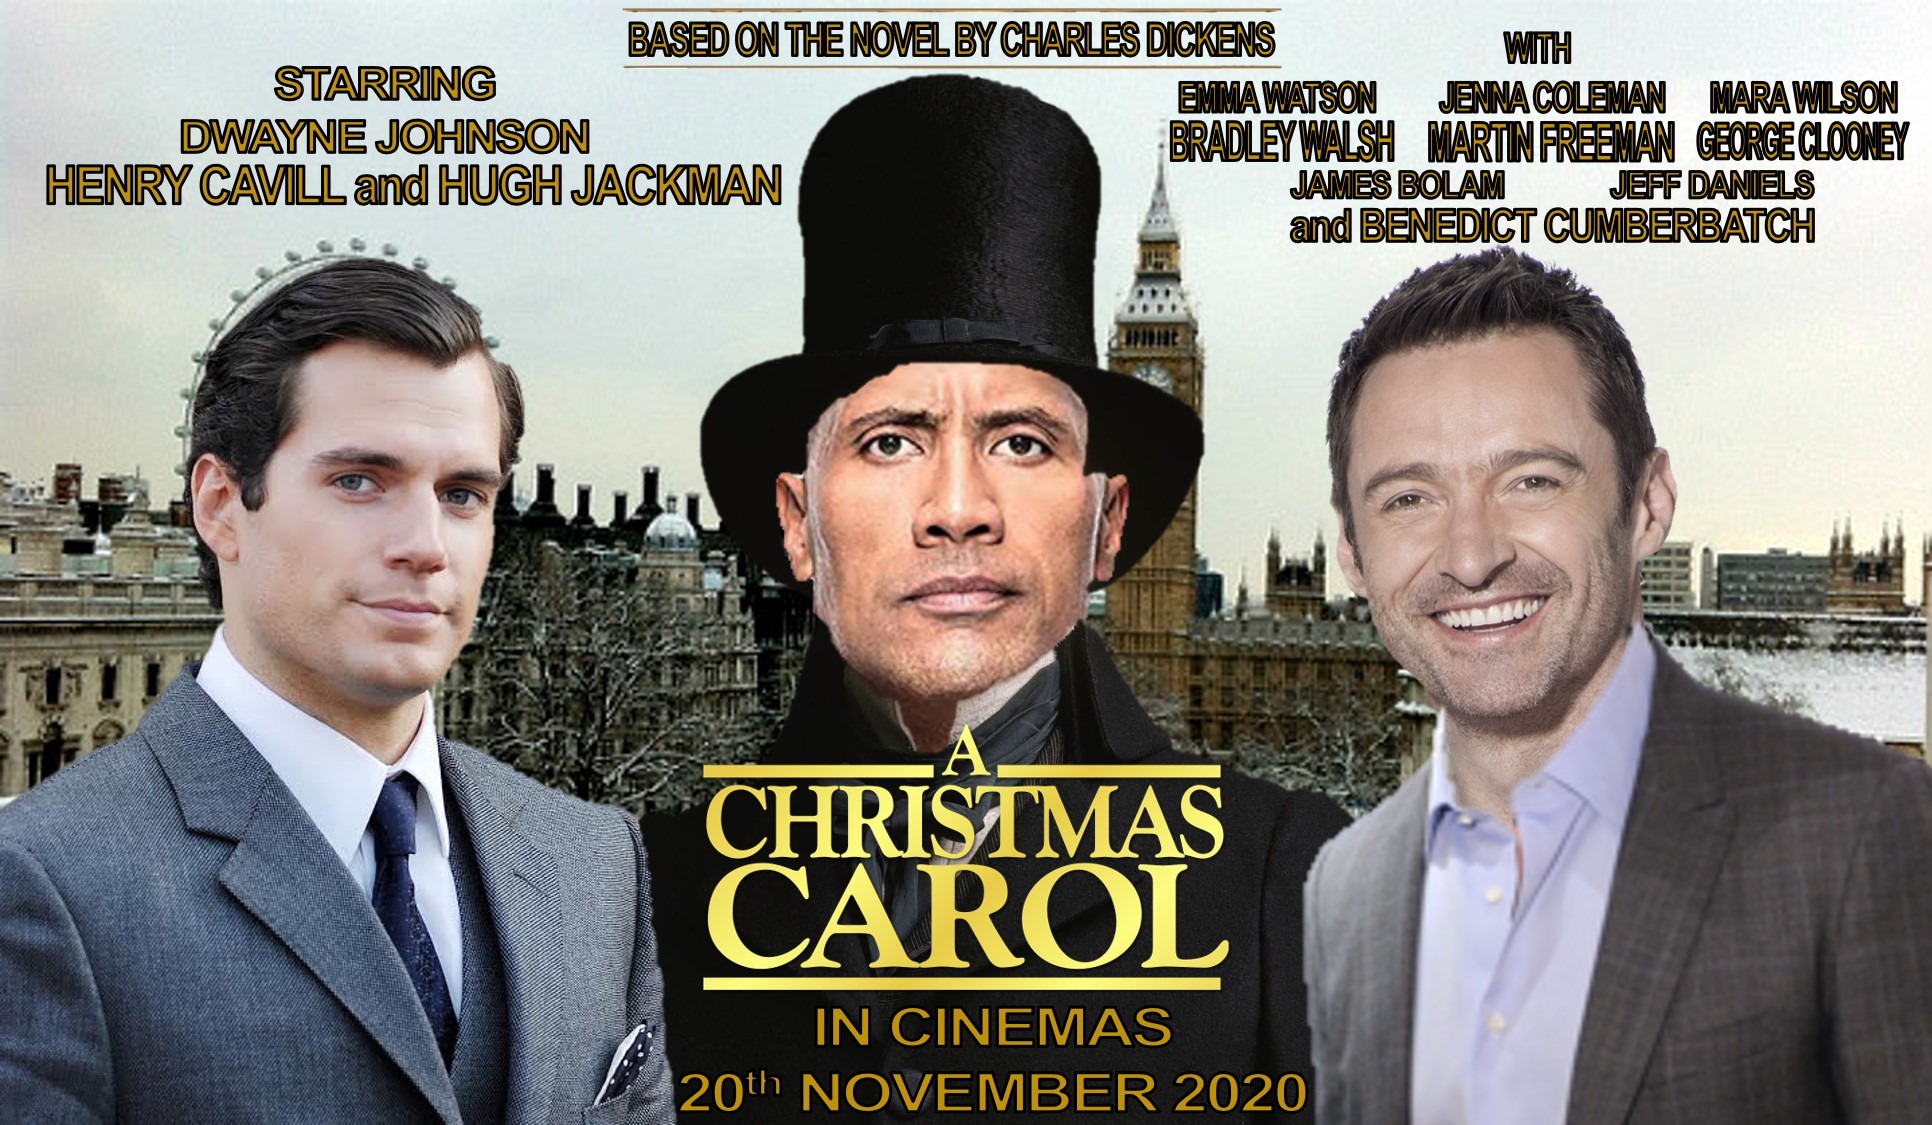 2020 Christmas Carols A Christmas Carol (2020 film) | Idea Wiki | Fandom